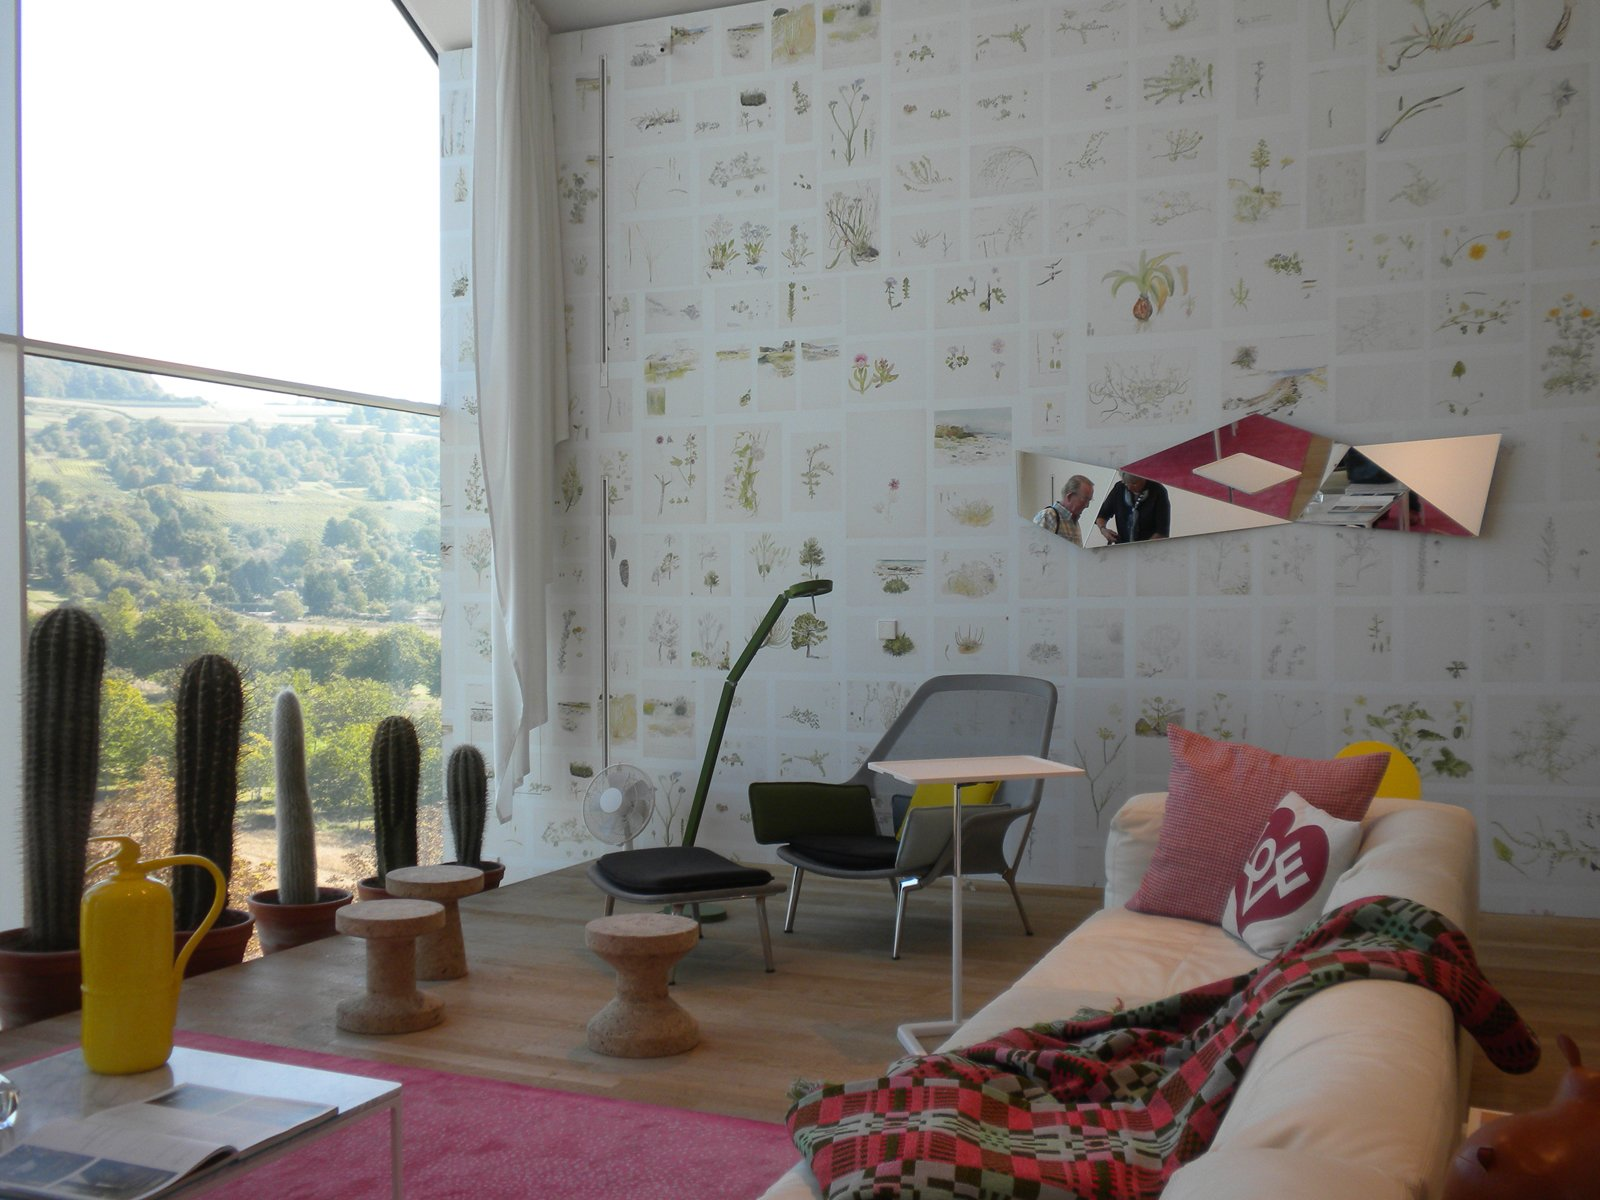 Much of the VitraHaus is set up in vignettes, like this living room scene that features the Slow Chair and Ottoman by Ronan and Erwan Bouroullec designed in 2006, the Place Sofa by Jasper Morrison designed in 2008, Morrison's Cork Family models A, B, and C designed in 2004, his Plate Table coffee tabledesigned in 2004, and the Suita Pillow by Antonio Citterio designed in 2010 using Alexander Girard's pattern Love graphic.  Inside the VitraHaus by Miyoko Ohtake